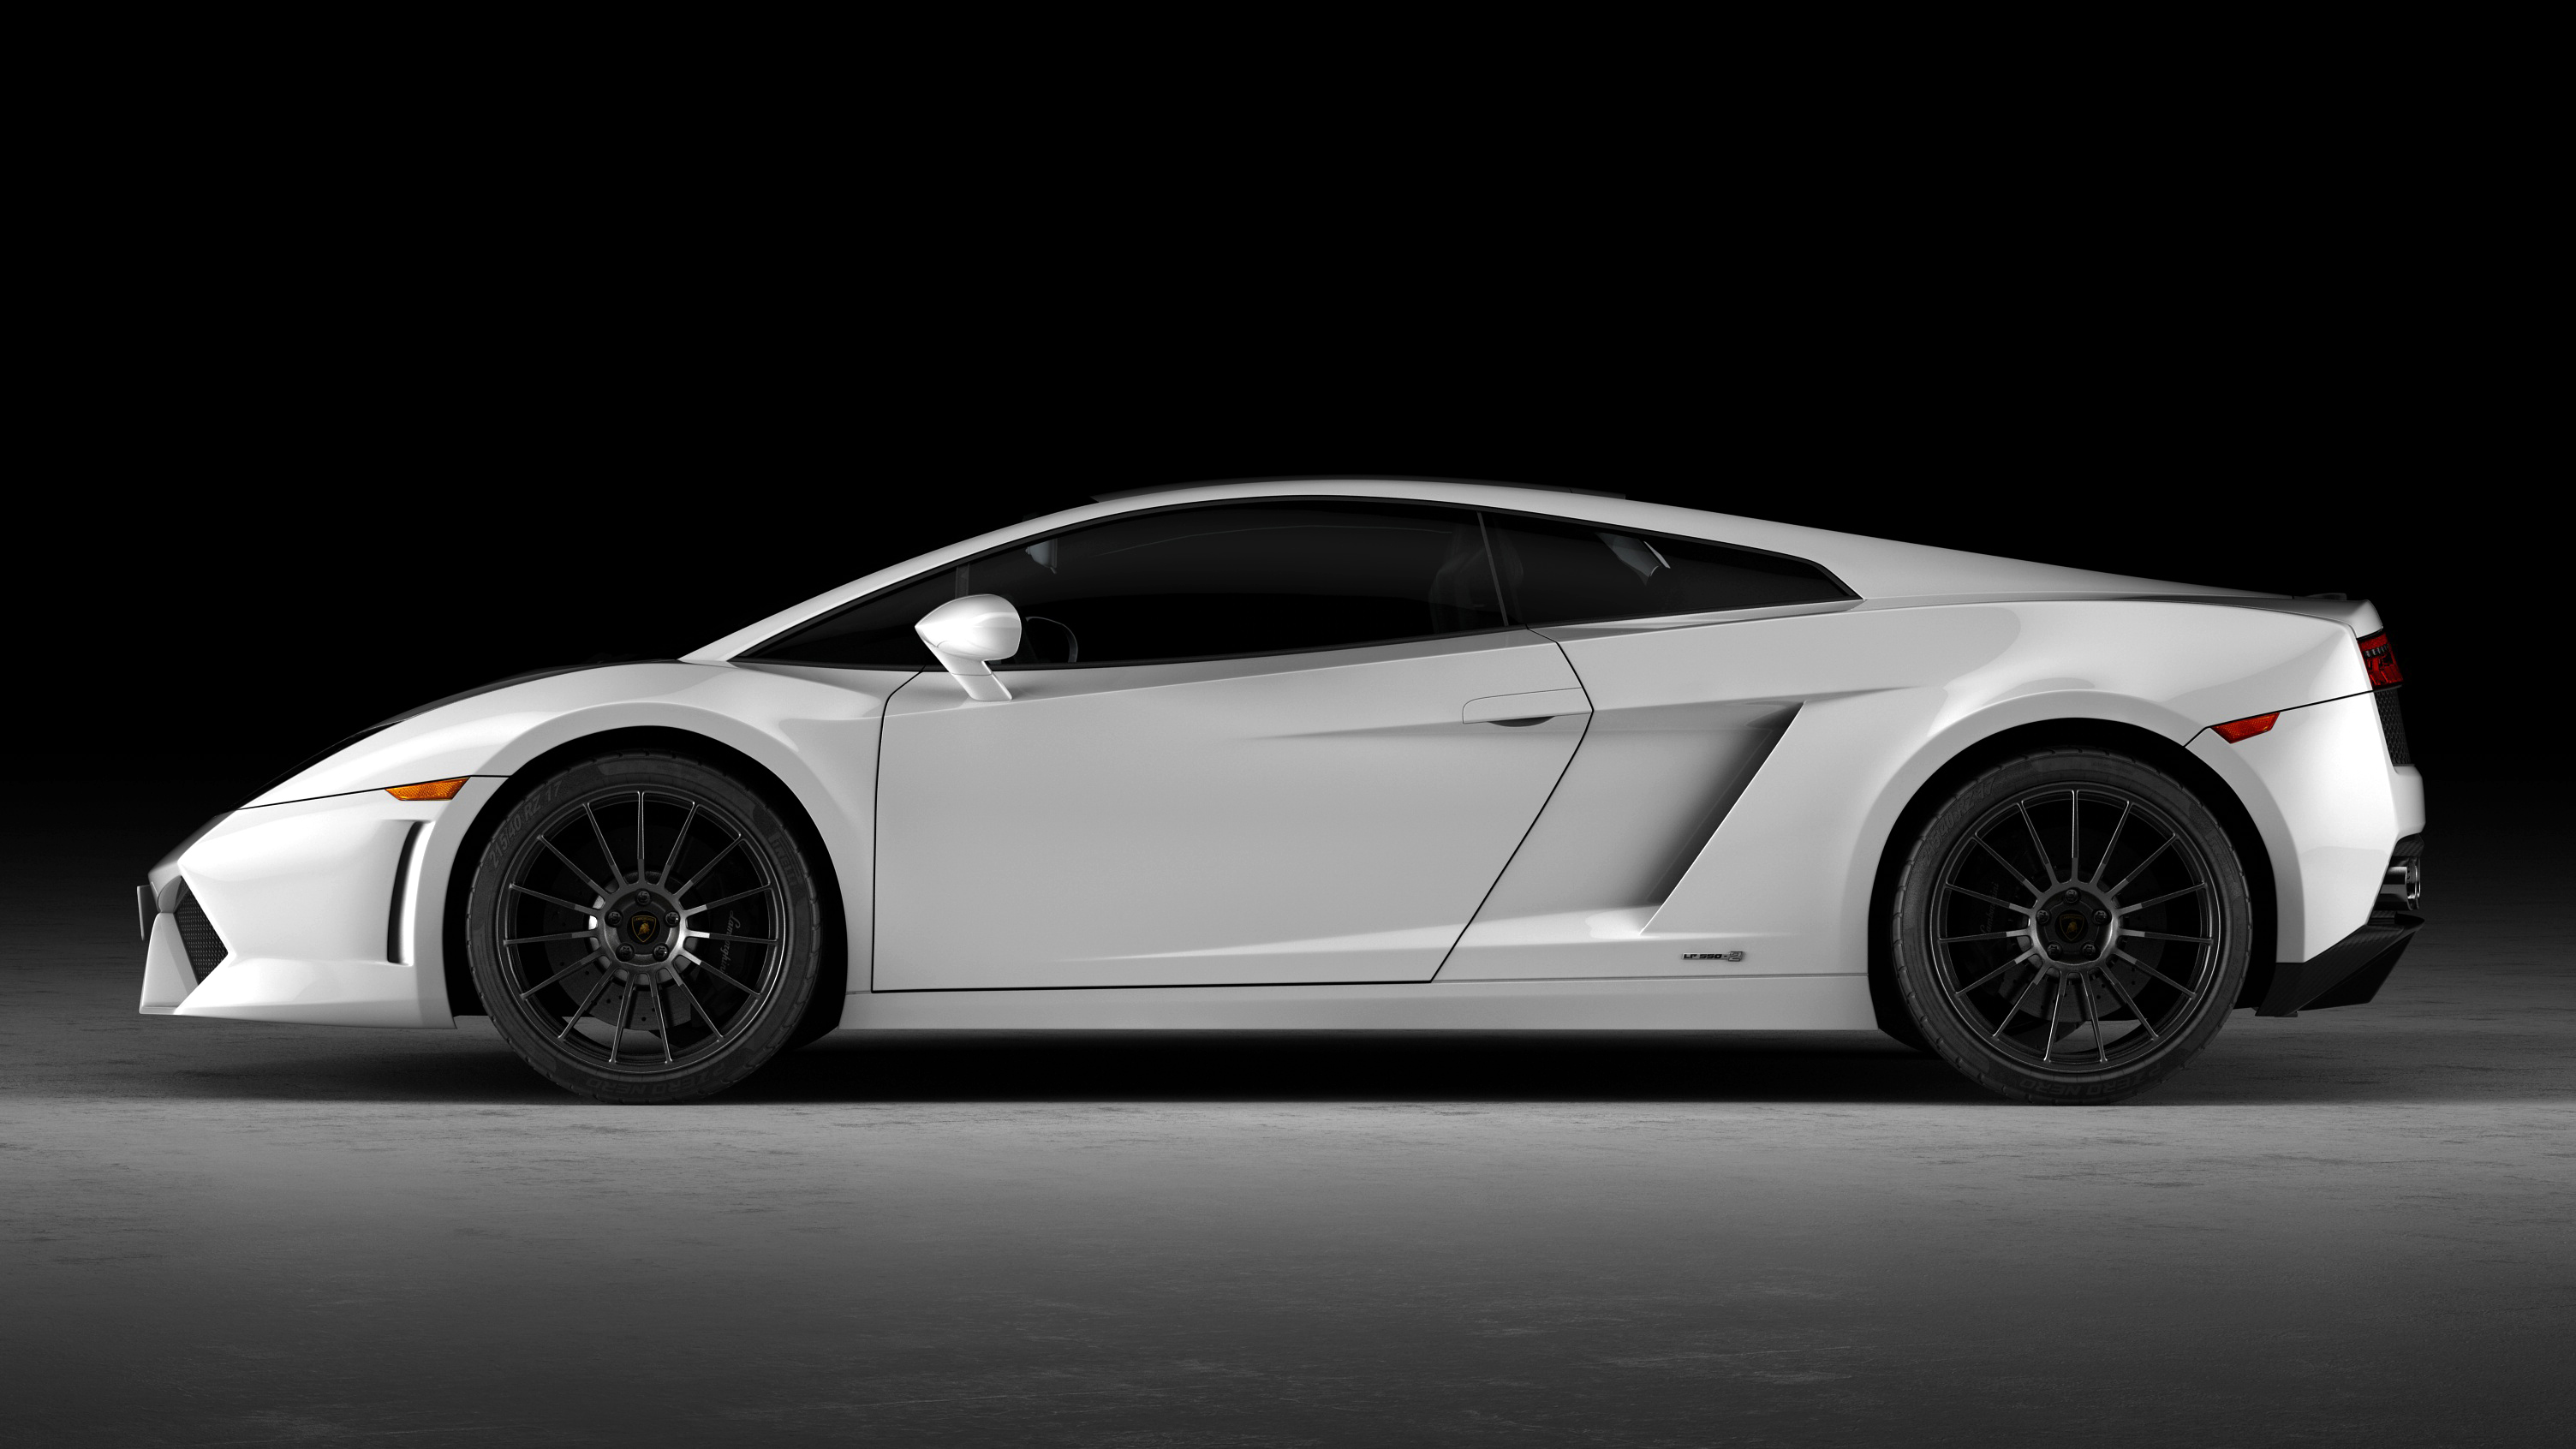 ... Lamborghini Gallardo LP 550 2 By Laffonte